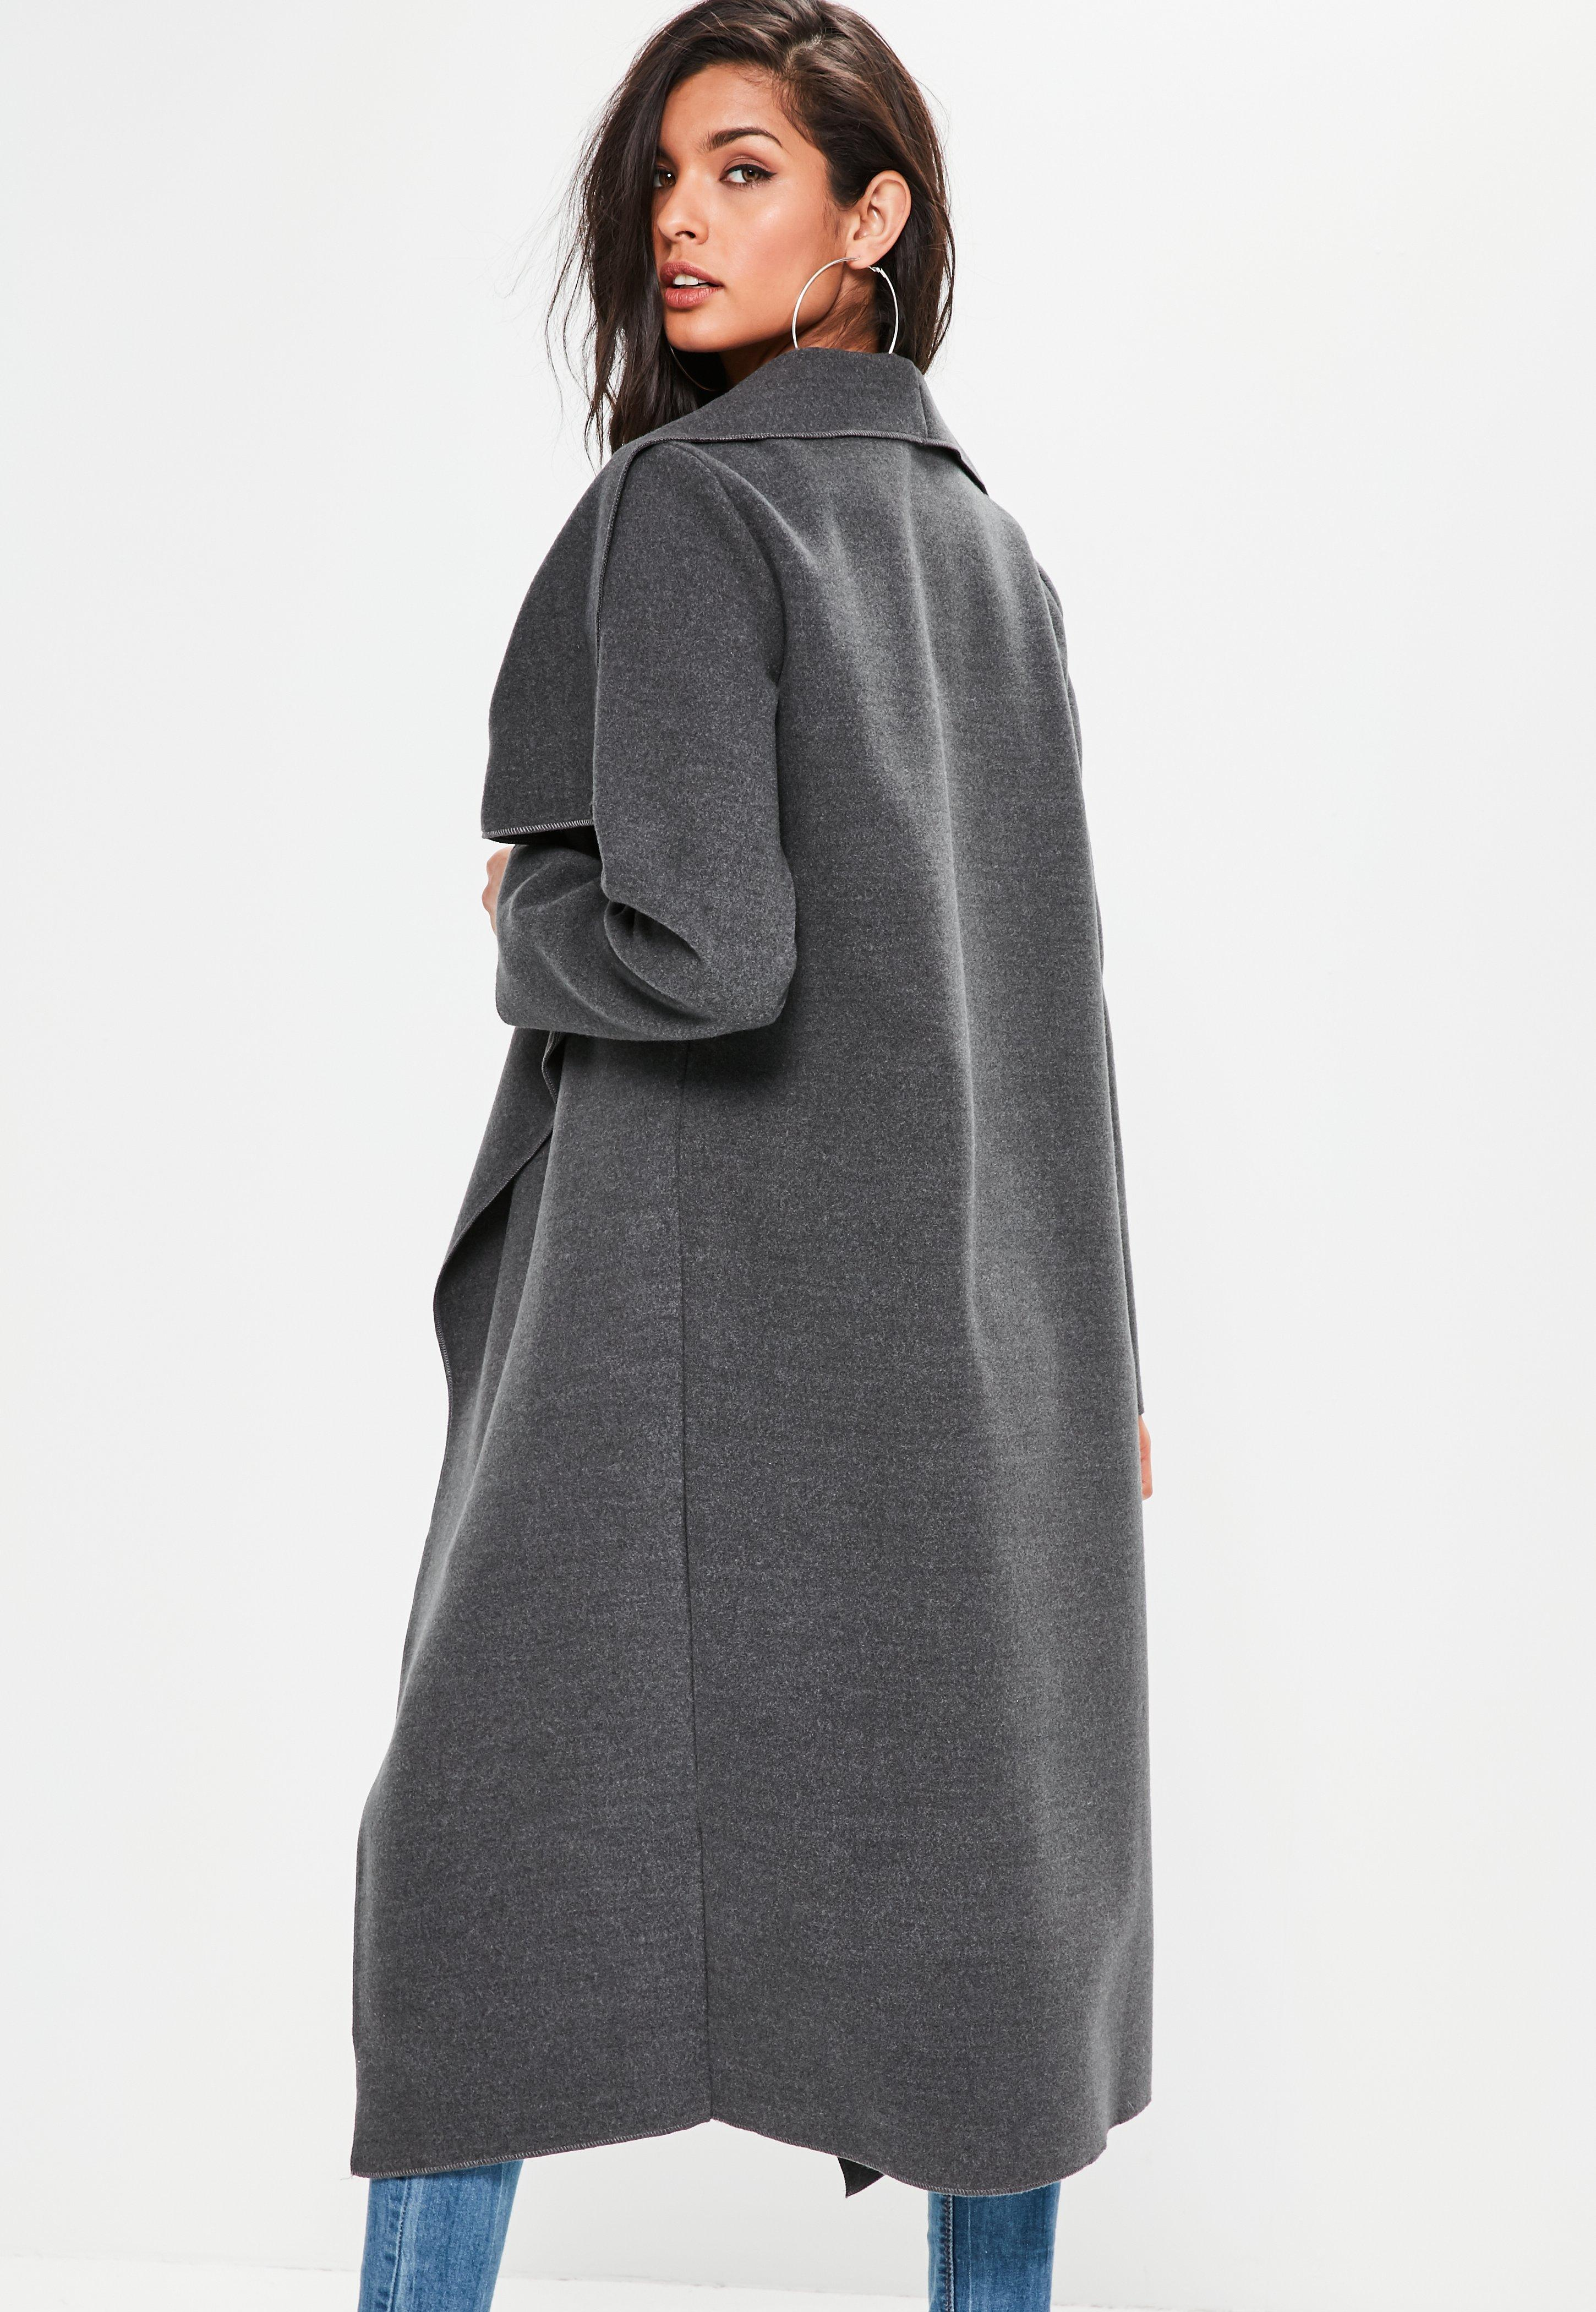 c1afc3c2cf Lyst - Missguided Grey Oversized Long Sleeve Waterfall Duster Coat ...